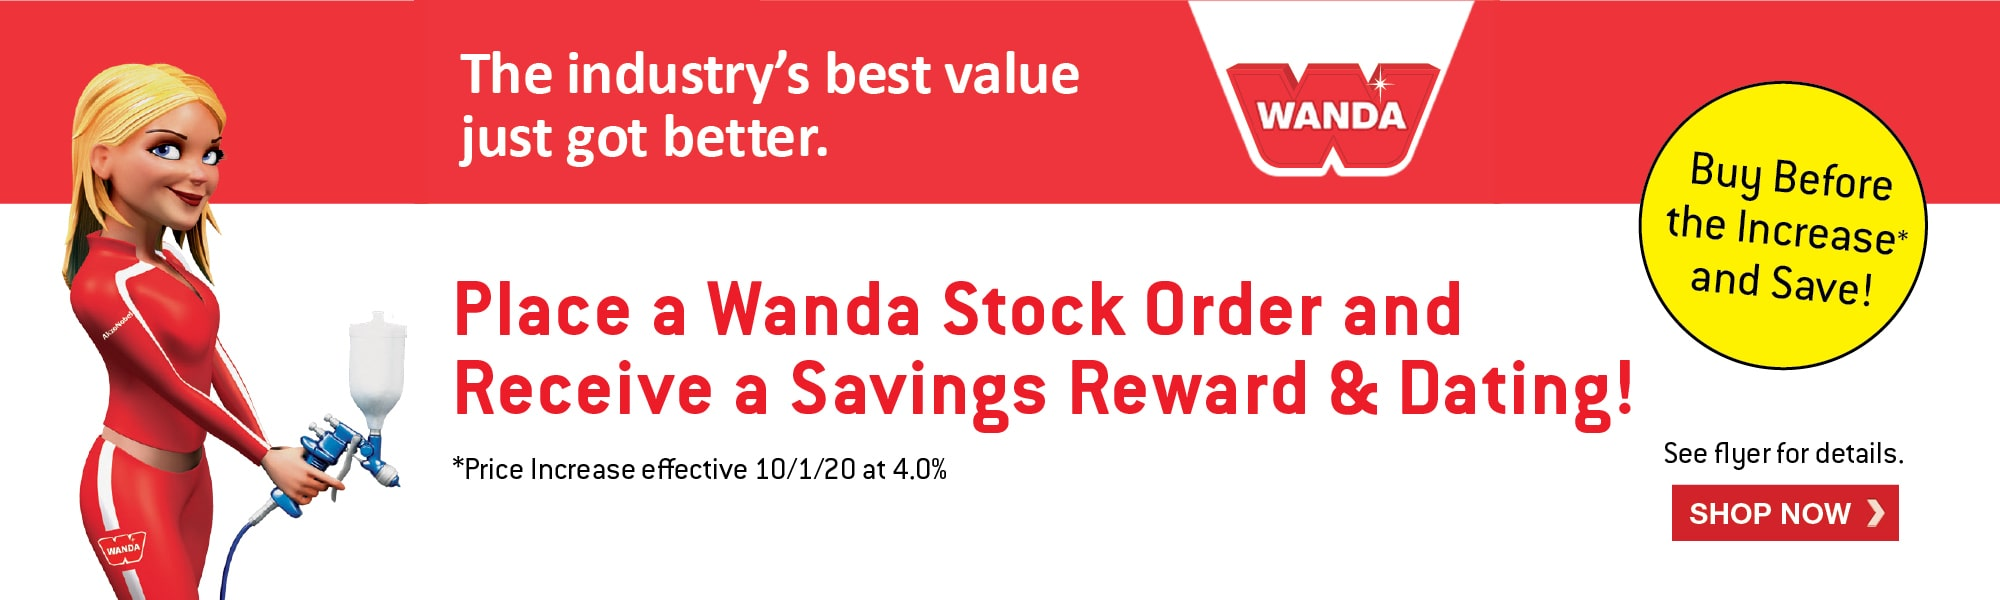 Wanda Price Protection Promo August 2020